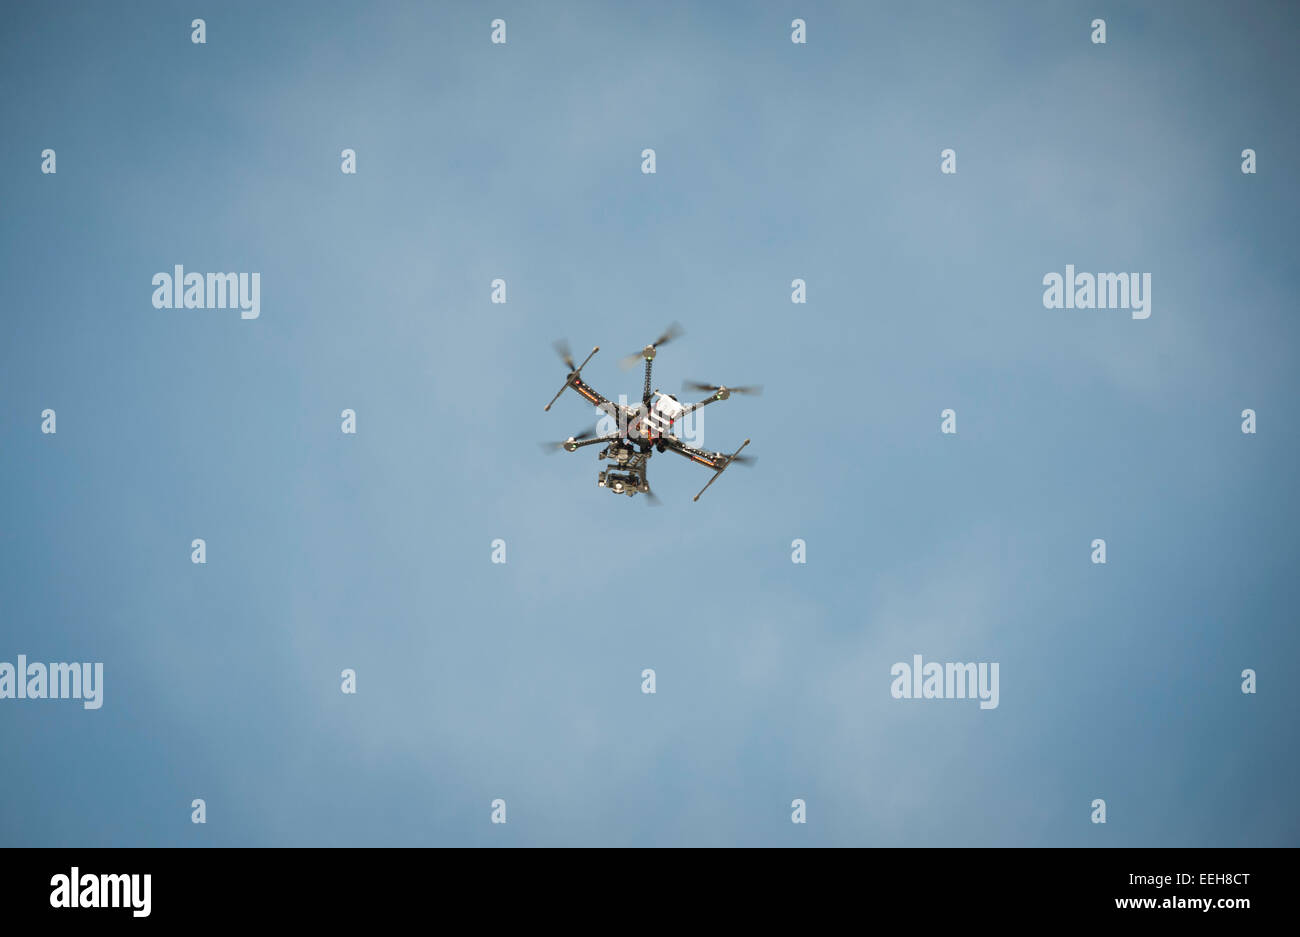 A civil Unmanned Aerial Vehicle (UAV) / multicopter drone used for aerial surveillance is flying in the air - Stock Image